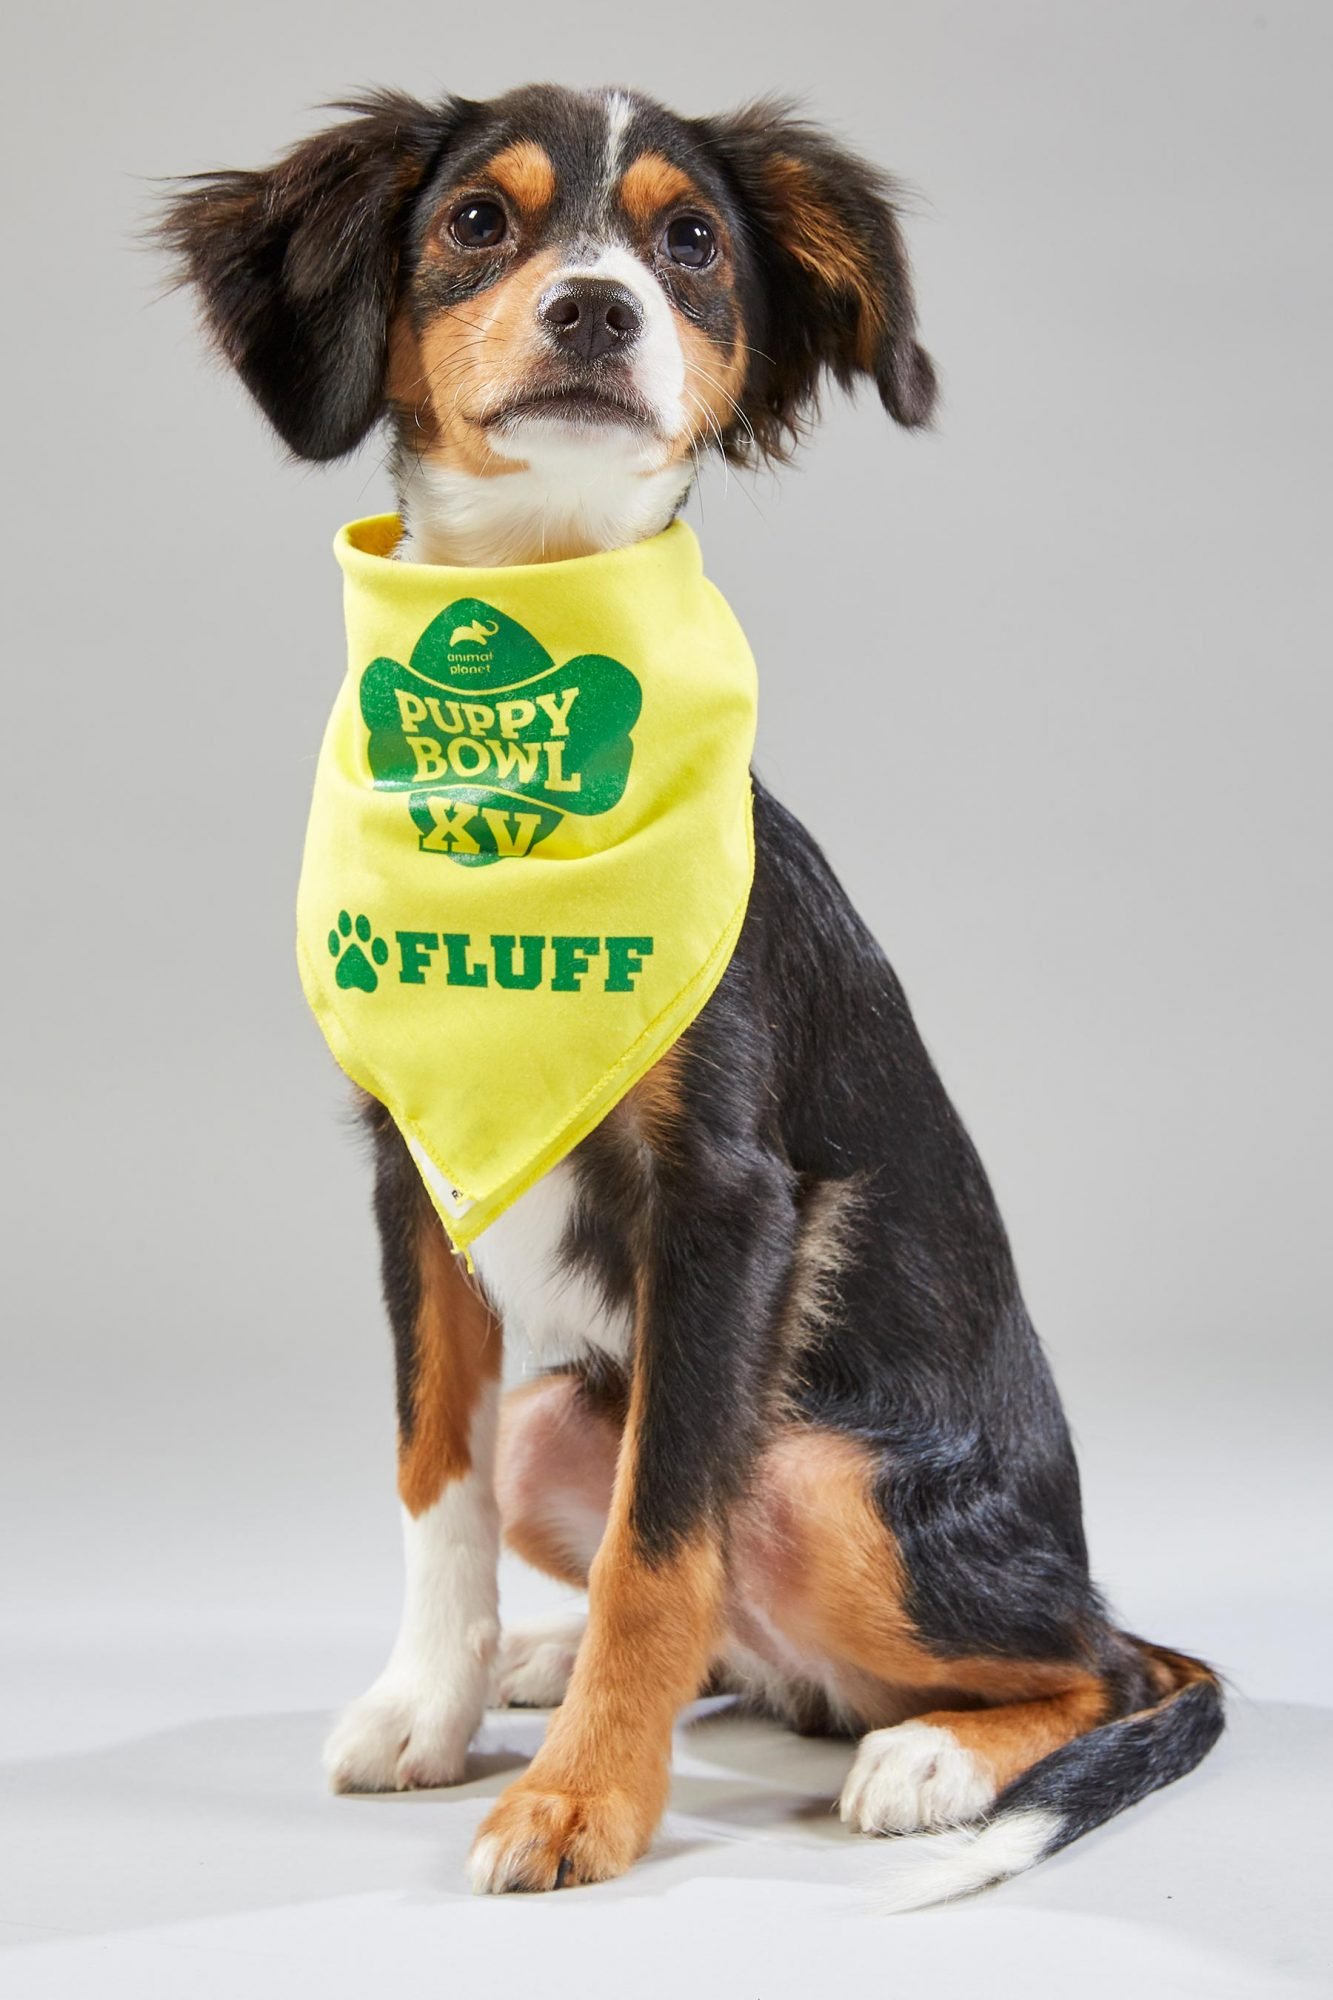 Portraits of puppies for Puppy Bowl XV